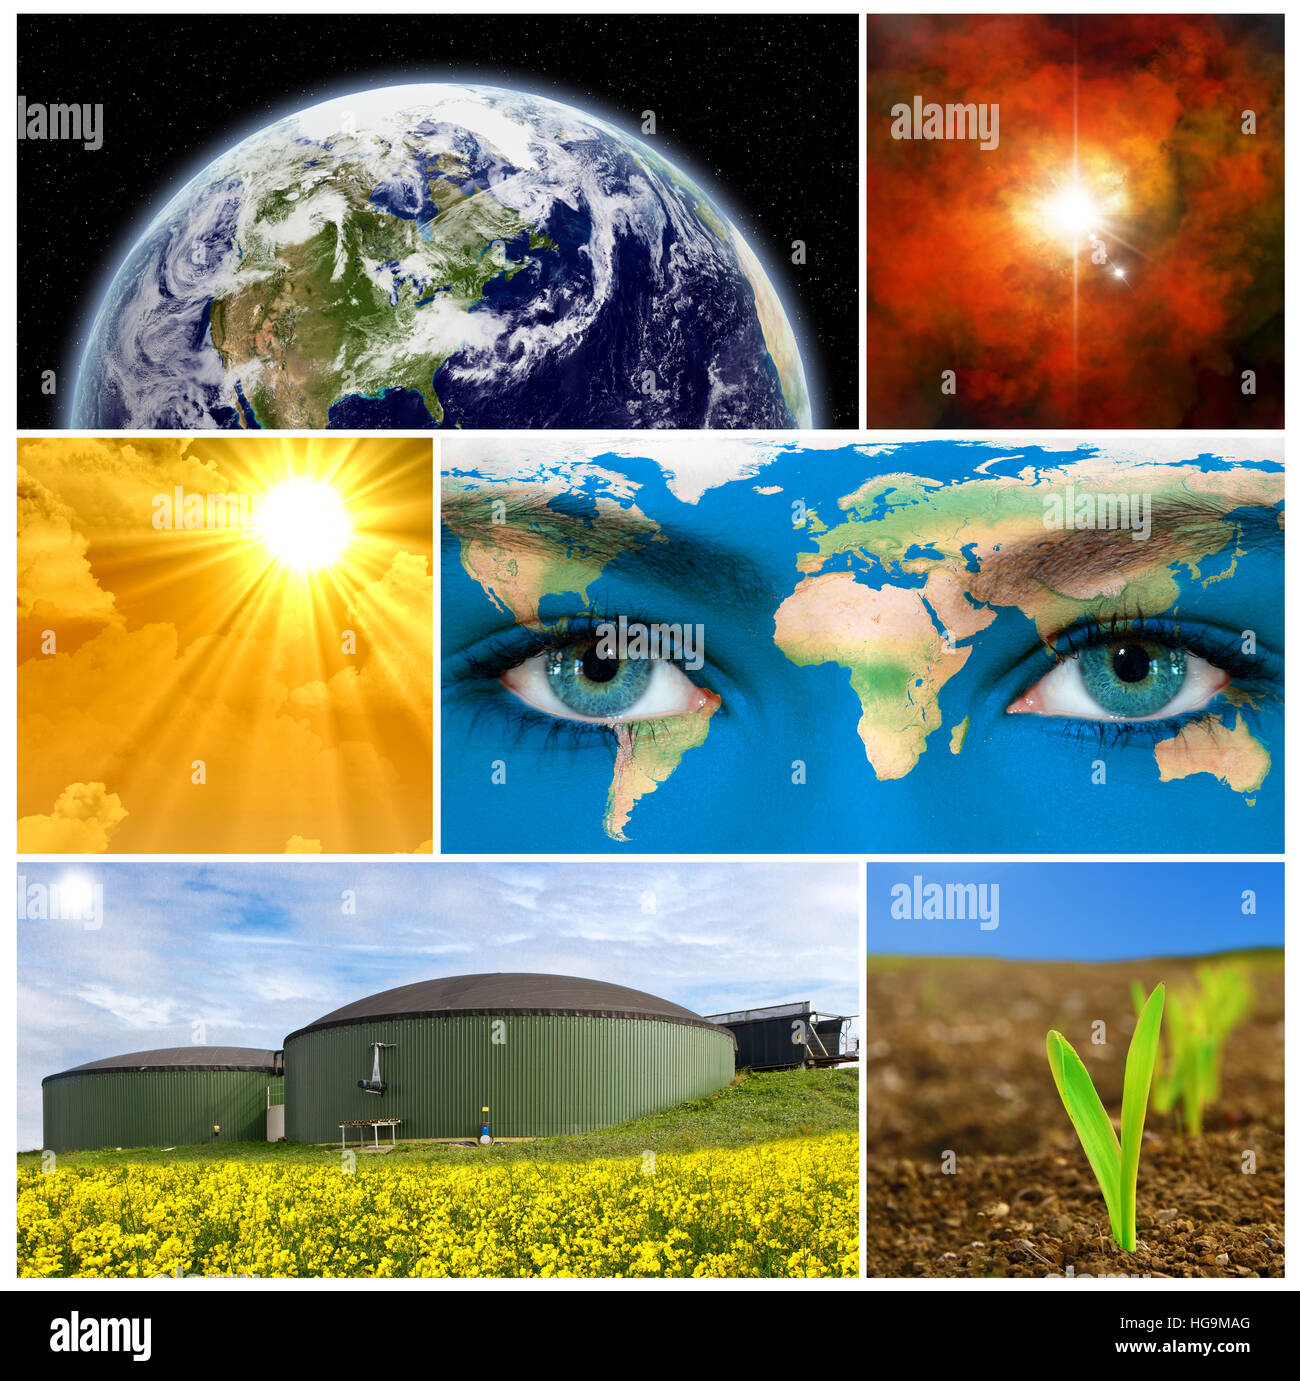 Sustainability - Stock Image